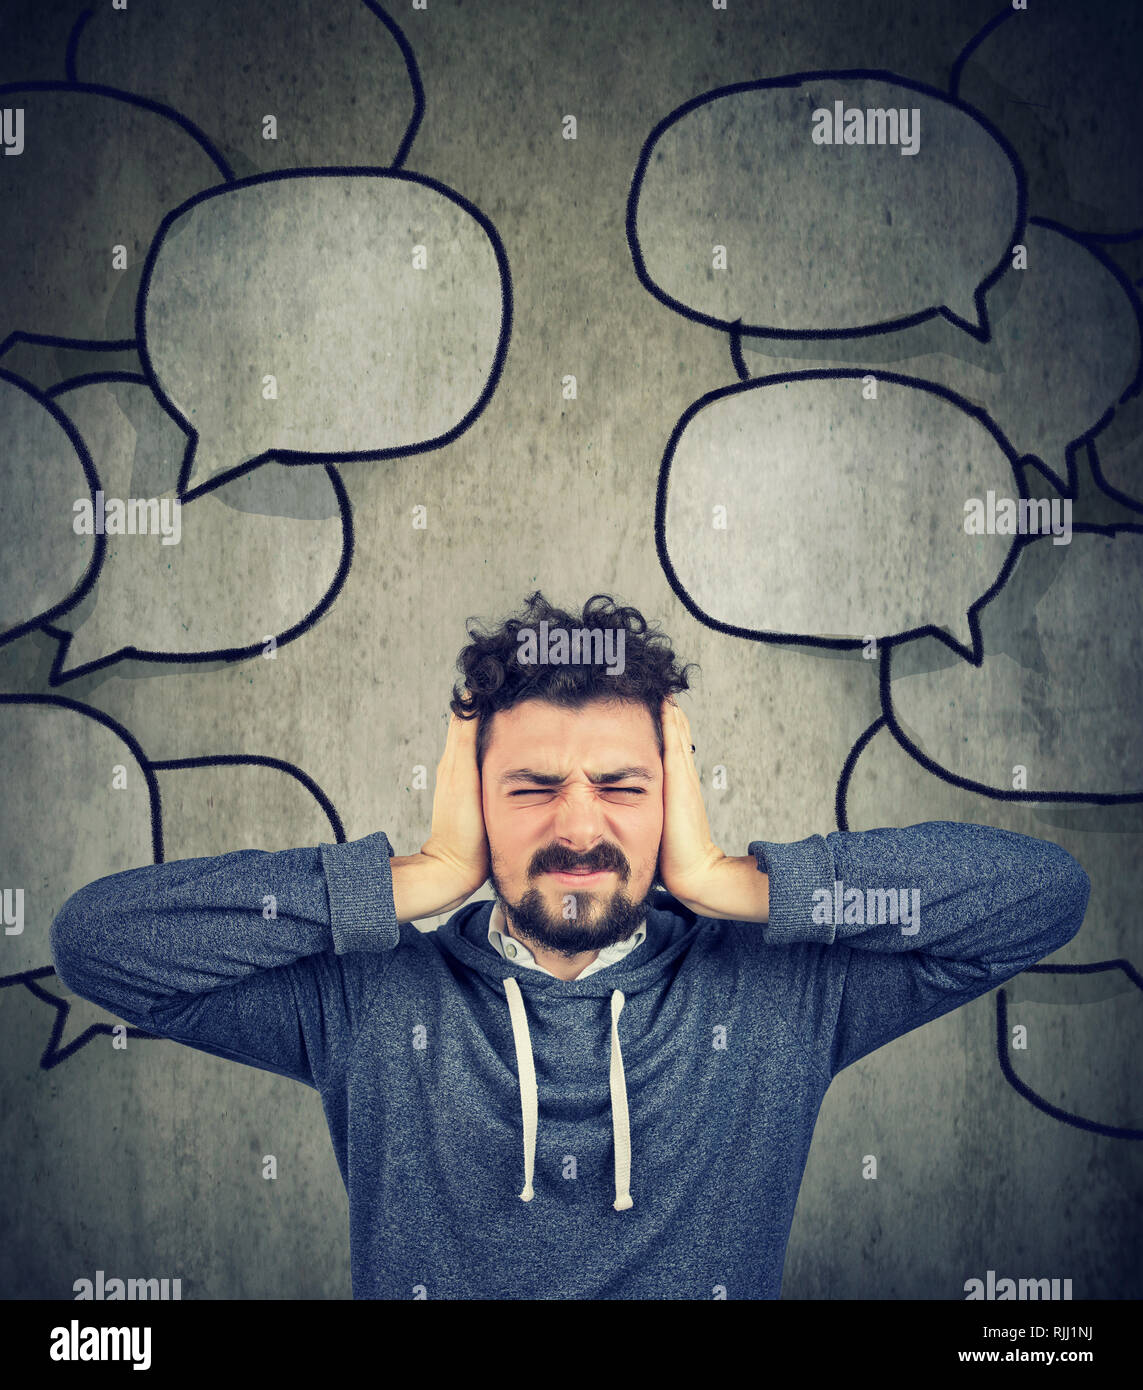 Frustrated stressed man covering with hands his ears tired of too much talk around him Stock Photo